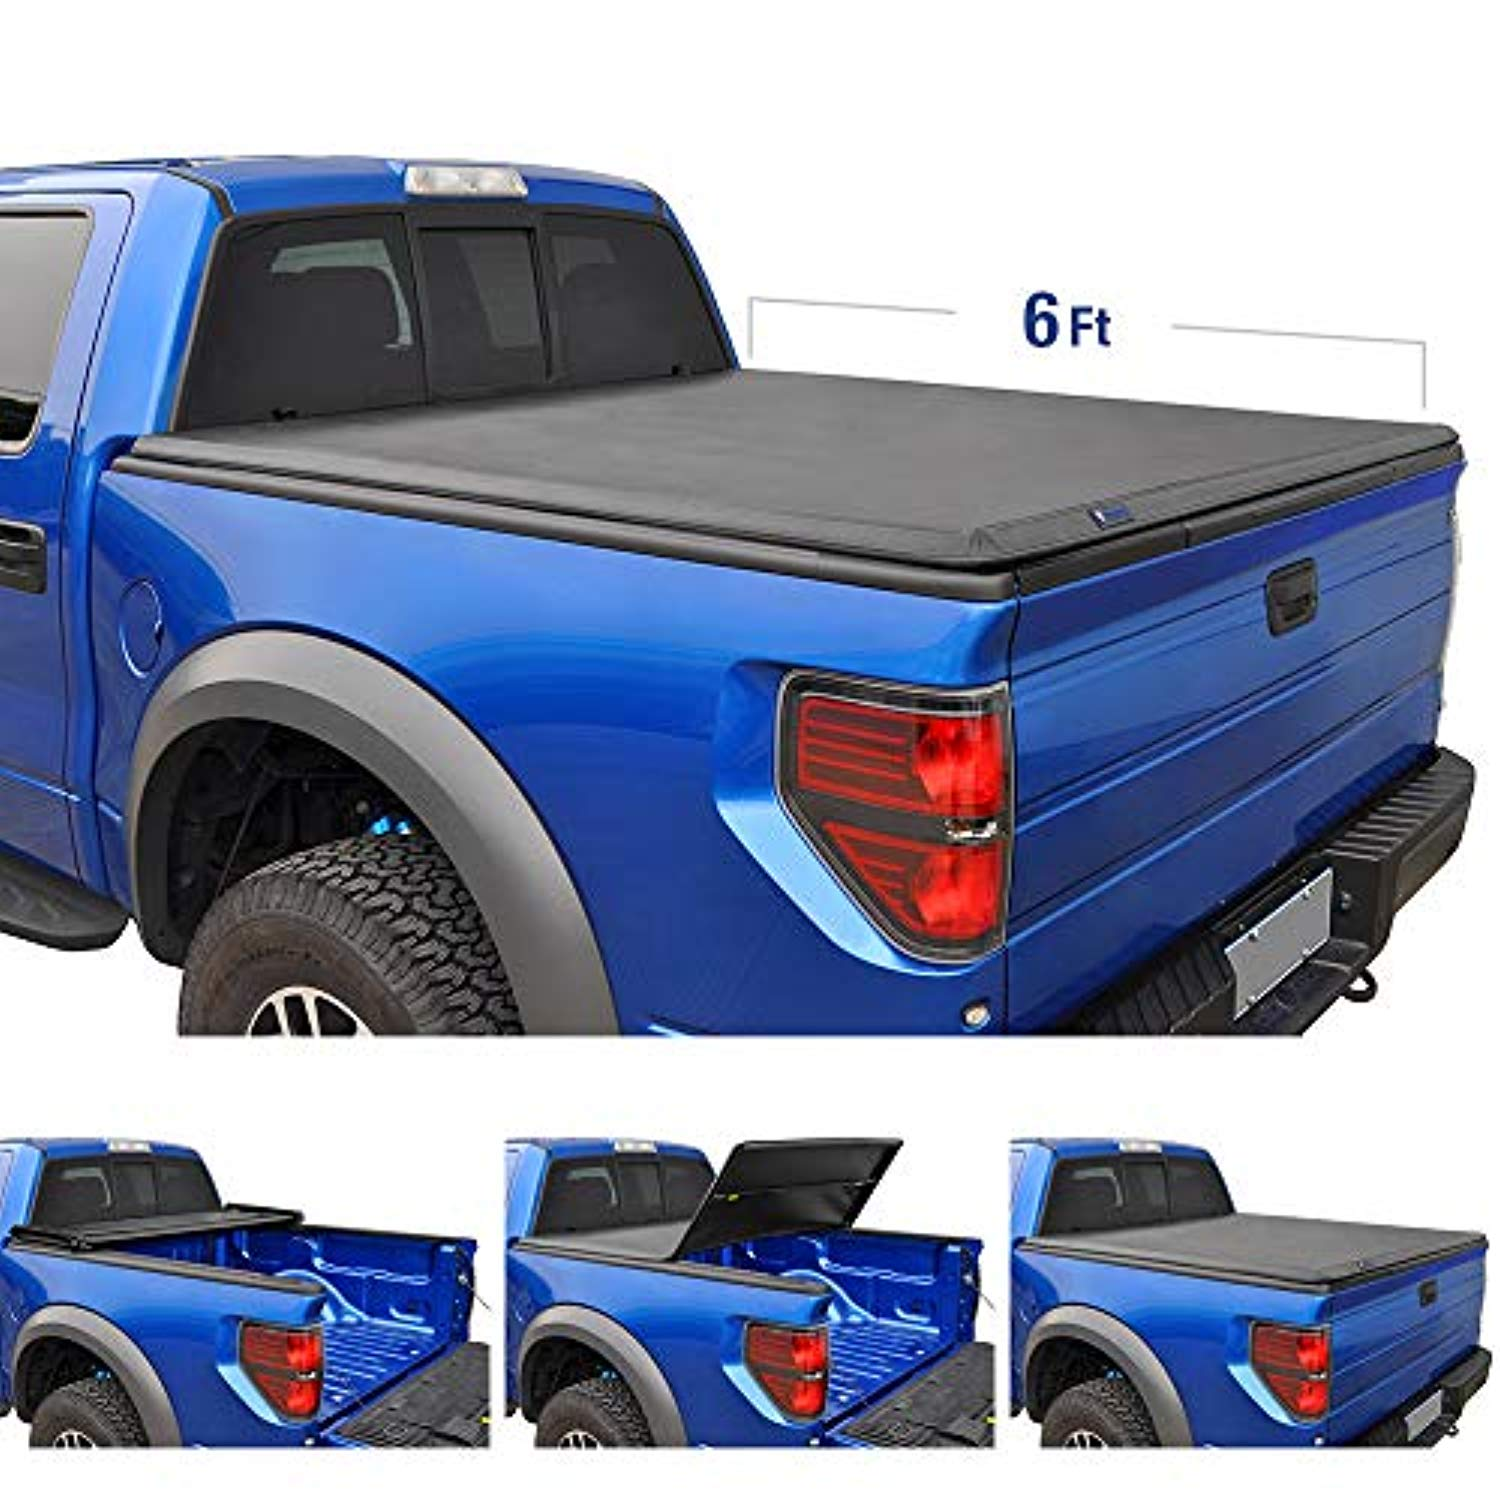 TRI-FOLD Truck Bed Tonneau Cover 2005-2018 Nissan Frontier; 2009-2014 Suzuki Equator | Fleetside 6' Bed | For models with or without the Utili-track System